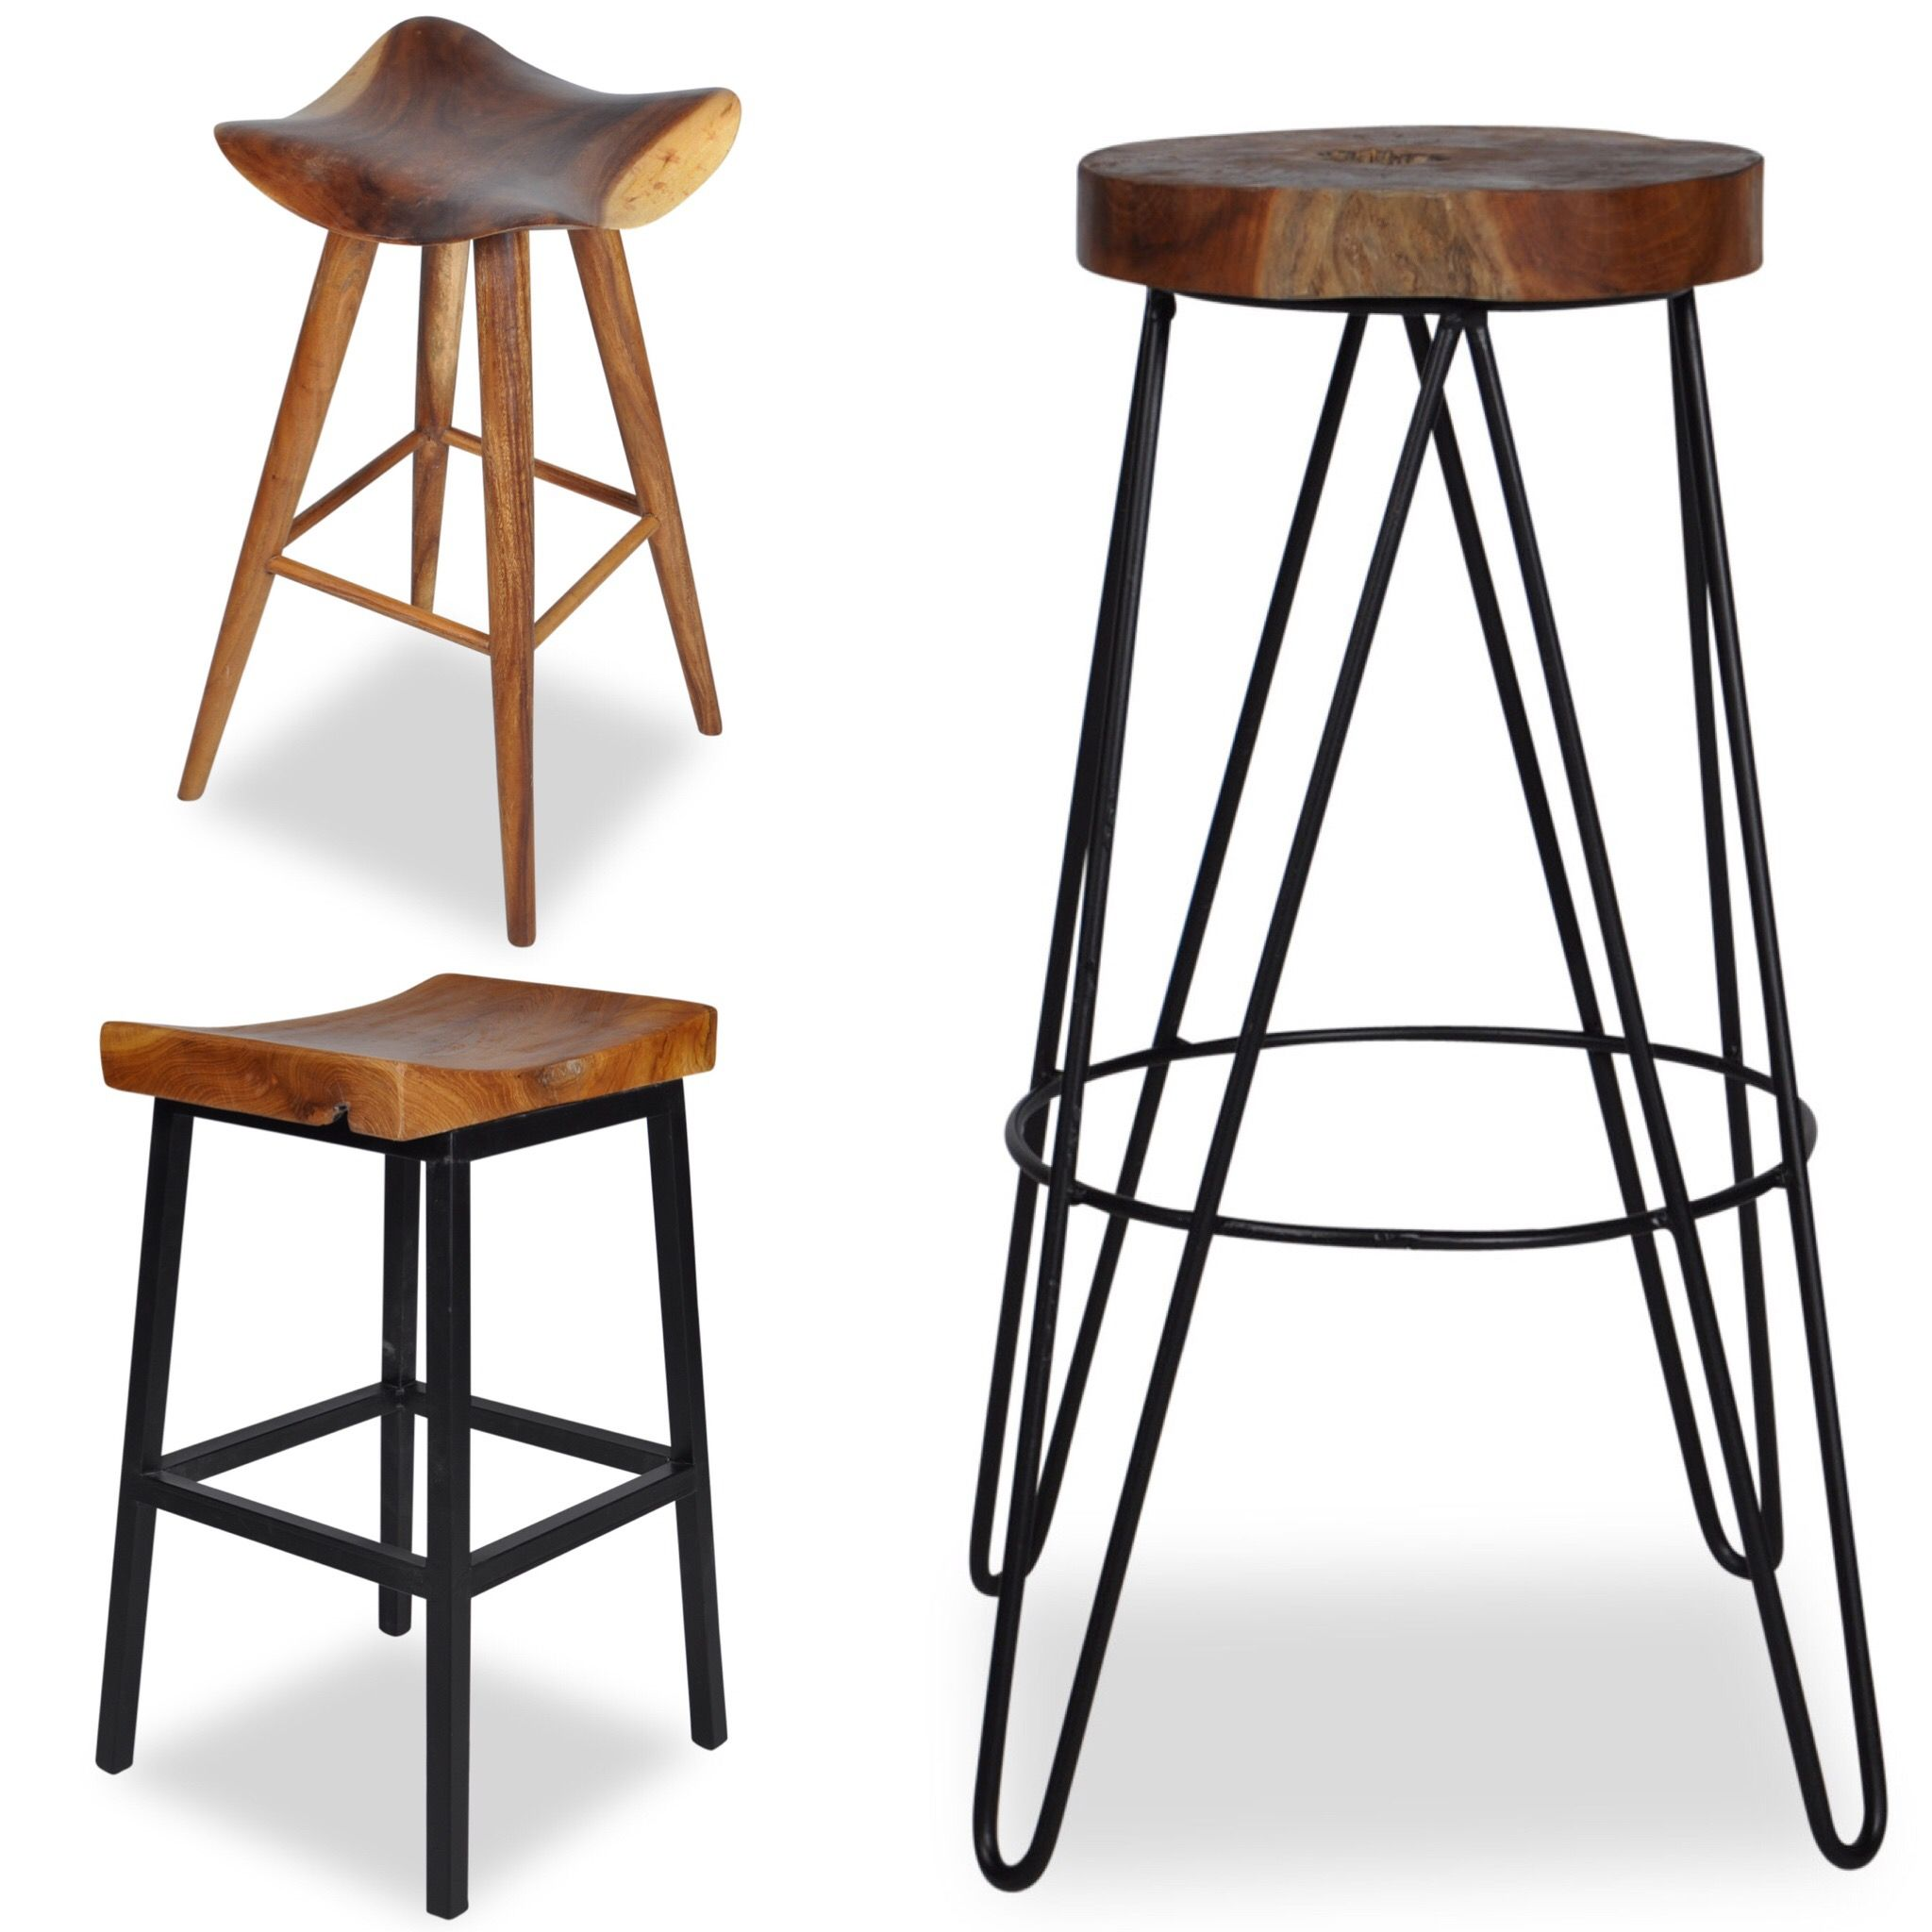 We Have A Huge Selection Of Wood And Metal Stools Here At